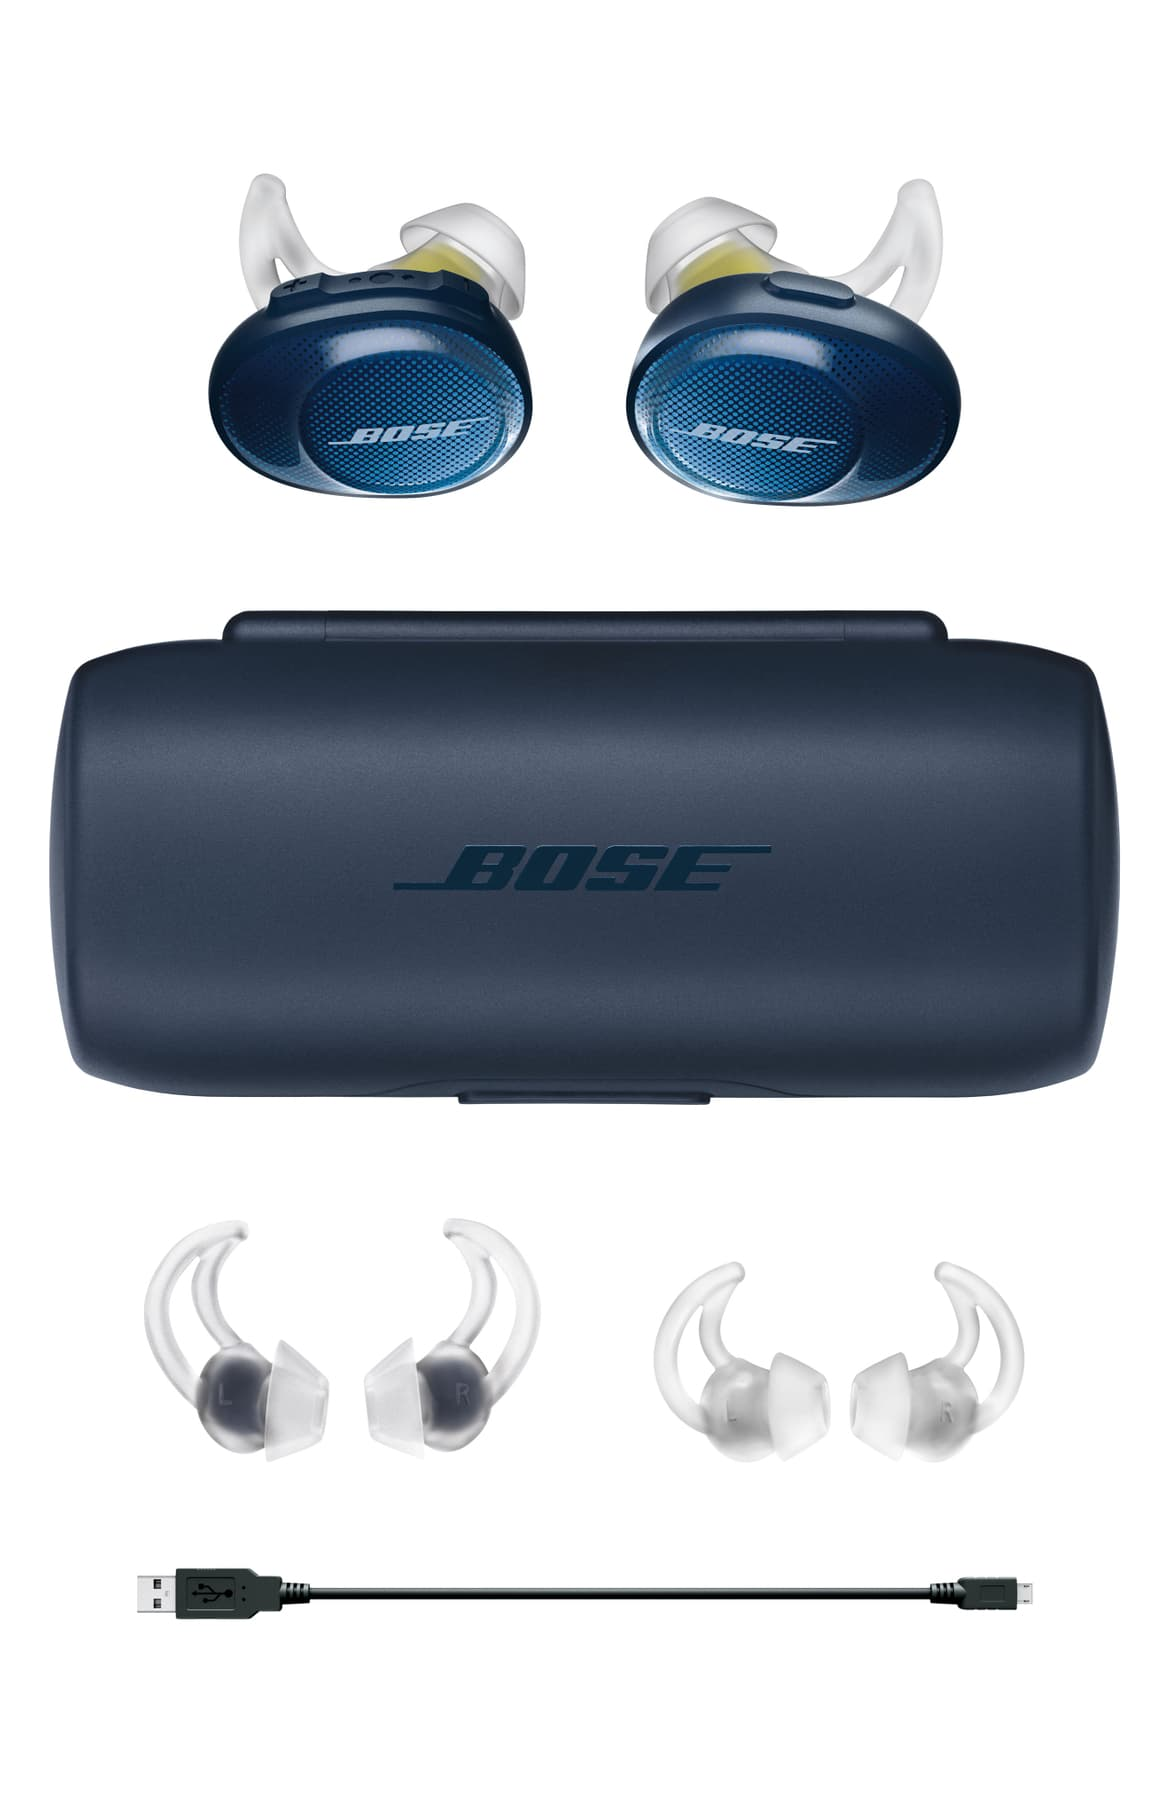 Take his workout wireless with these high-performance ear buds that are optimized for active use - the added bonus is that they look really cool. $199.00 at Nordstom. (Image: Nordstrom)